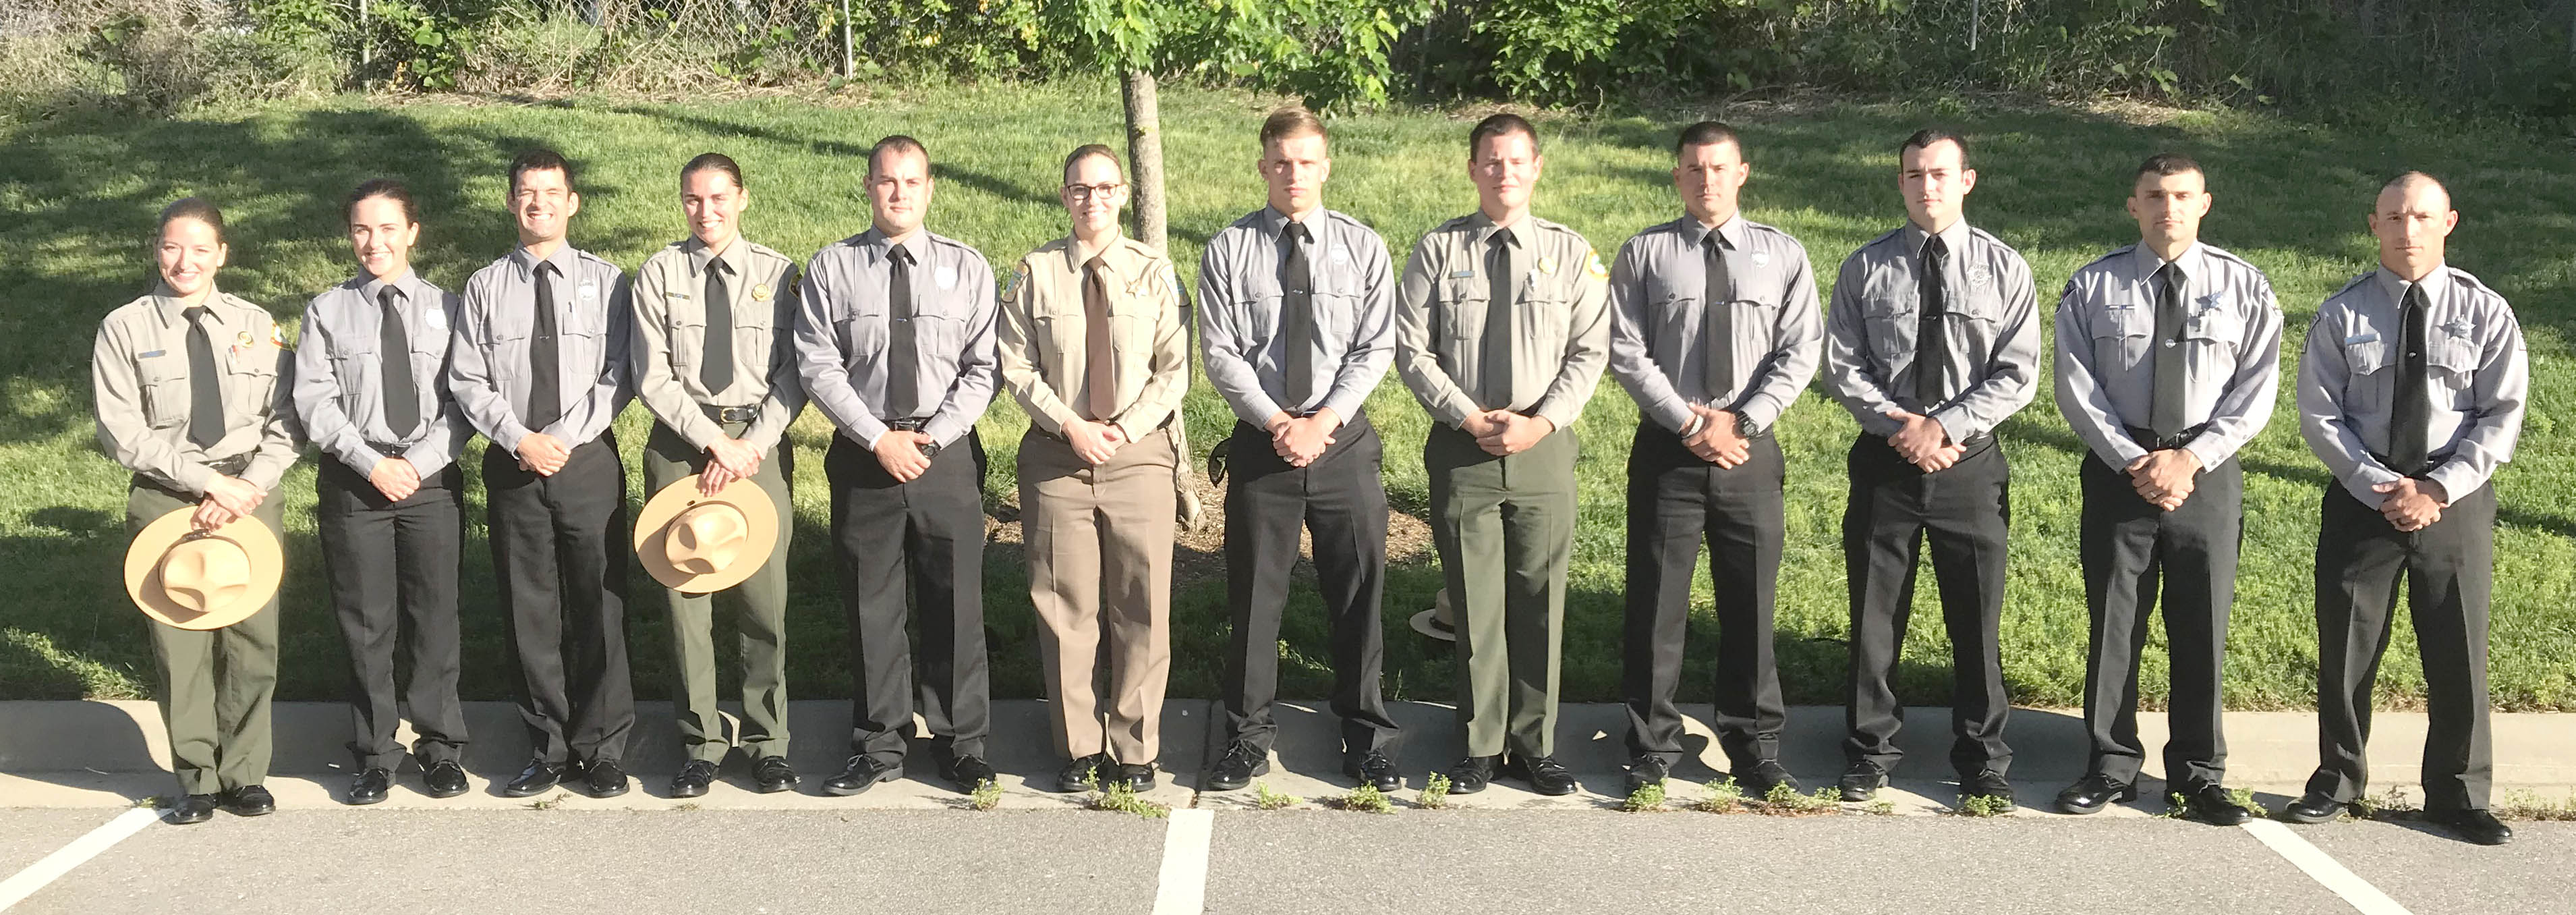 Click to enlarge,  Pictured are members of Central Carolina Community College's Basic Law Enforcement Training (BLET) graduating class -- Rachel Mumma, Kendra Hepner, John Beach, Emily Davies, Alan Zoller, Samantha Spears, Devin Smith, Jonathan Buie, Evan Cannaday, Jesse Moore, Jonathan Cox, and David Nixon. For more information about the college's BLET program, visit www.cccc.edu/blet or contact Robert Powell at rpowell@cccc.edu or 919-777-7774.